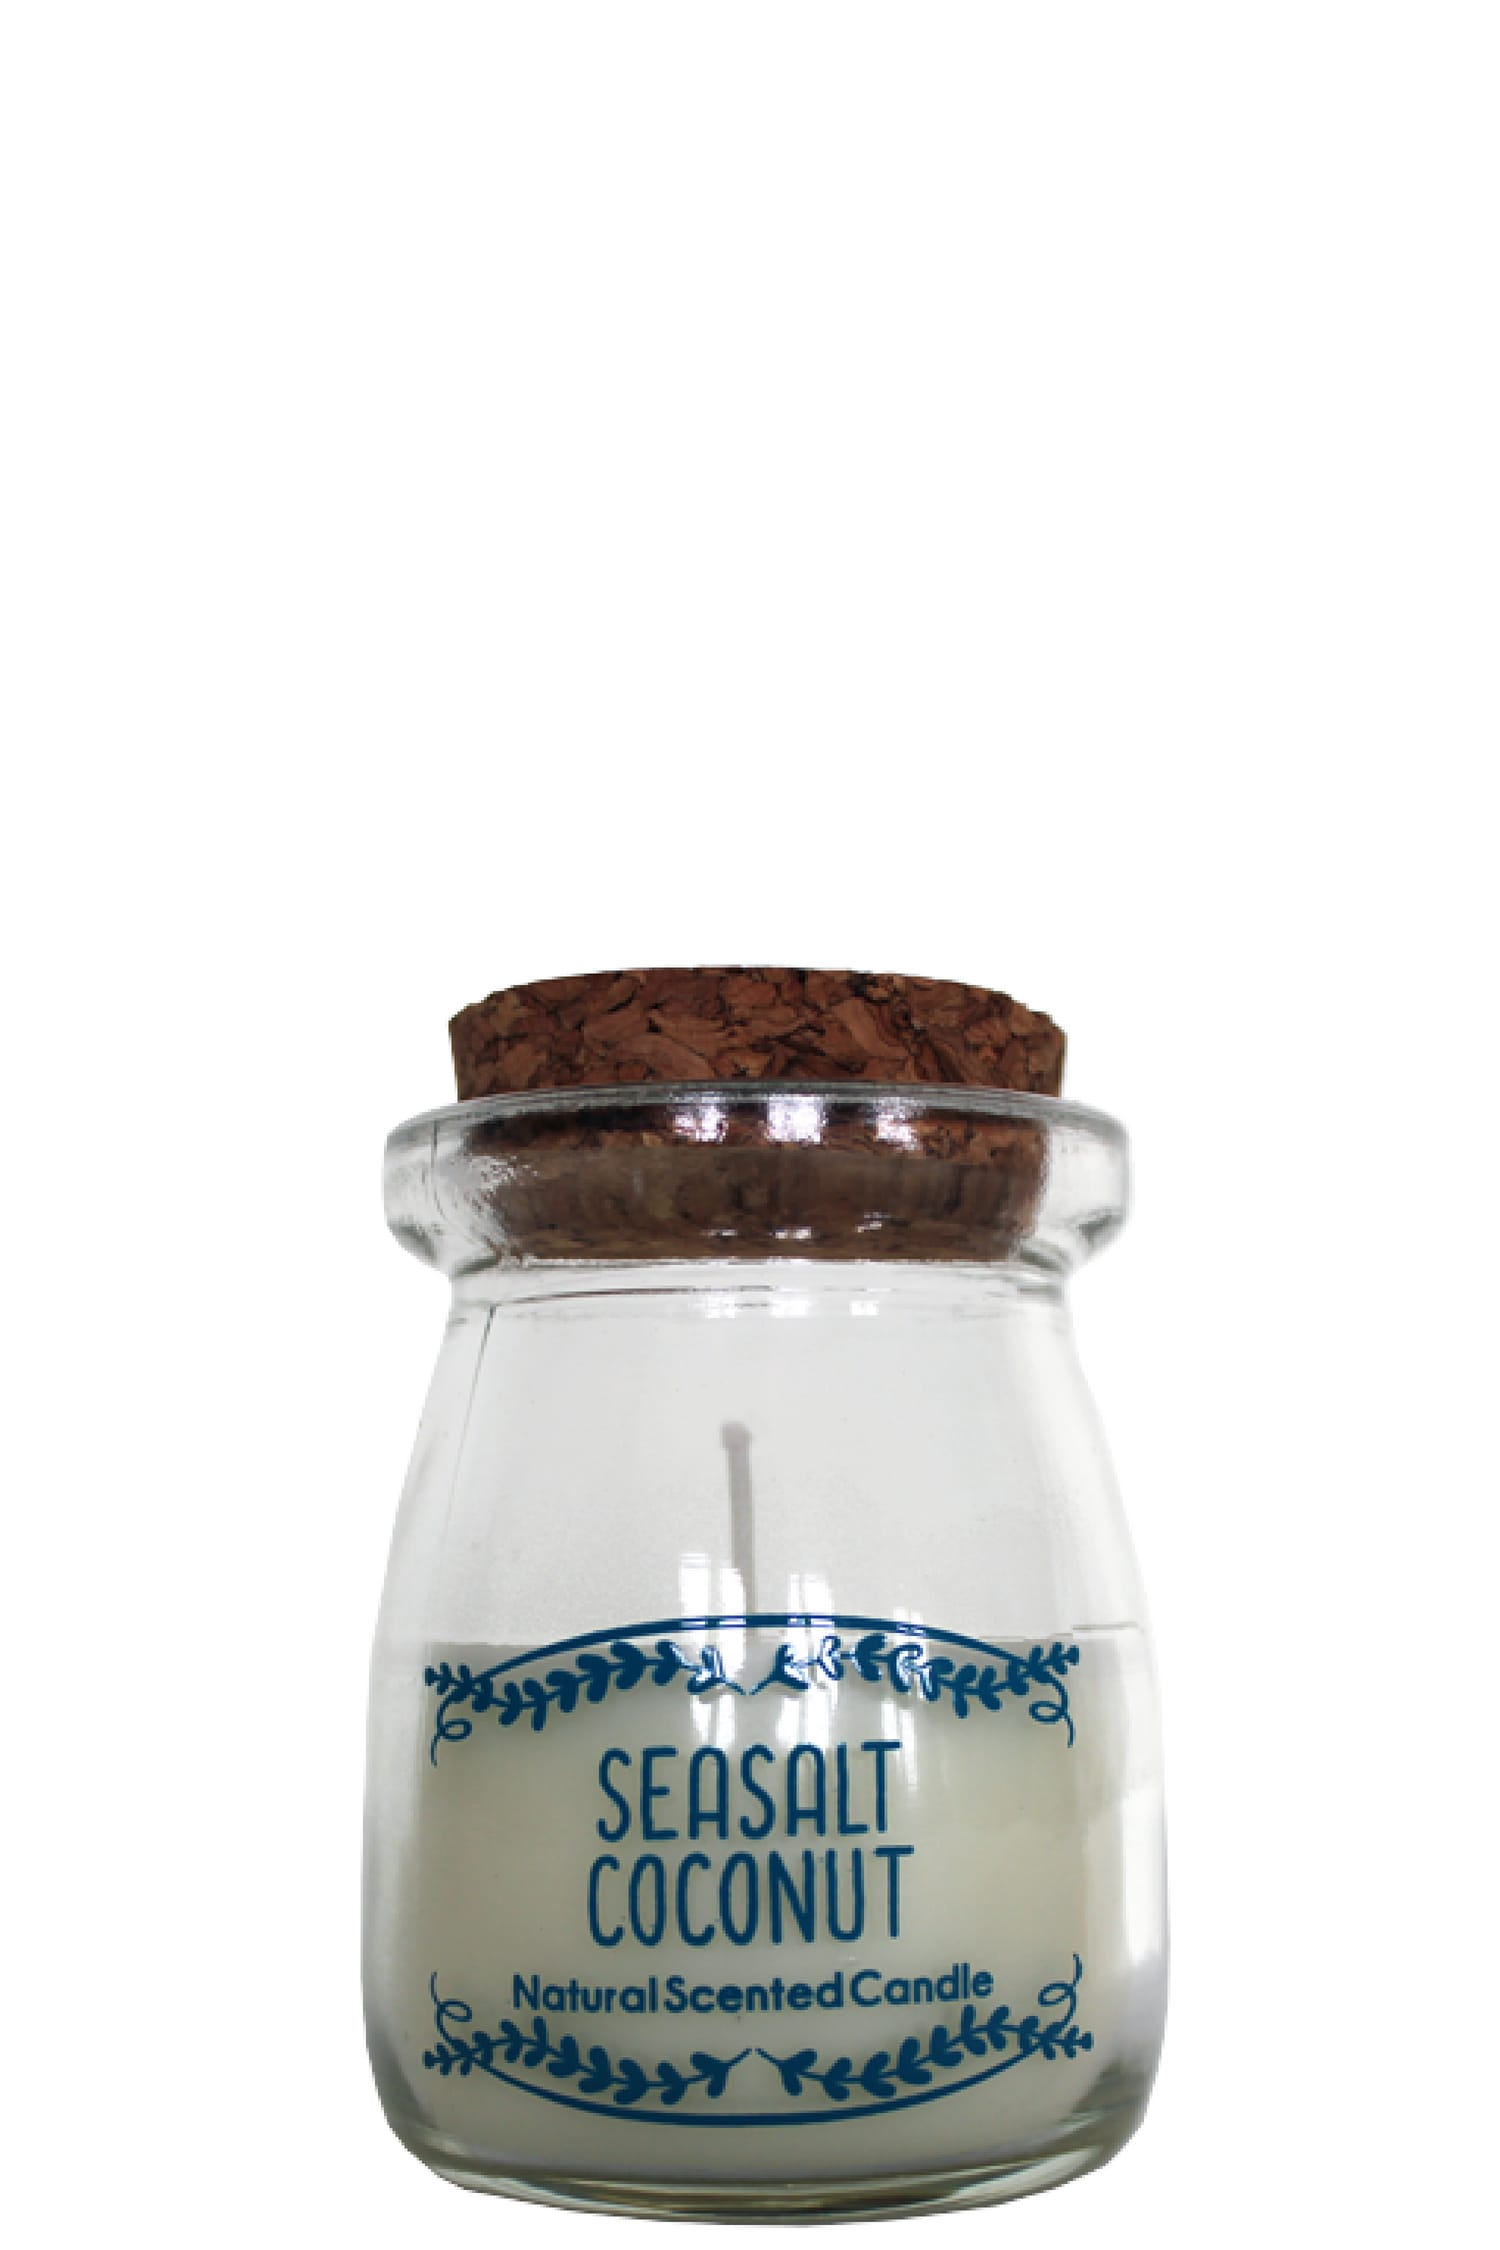 Seasalt Coconut Fragrance. A beautifully scented candle set within a mini mason style jar with a cork lid.